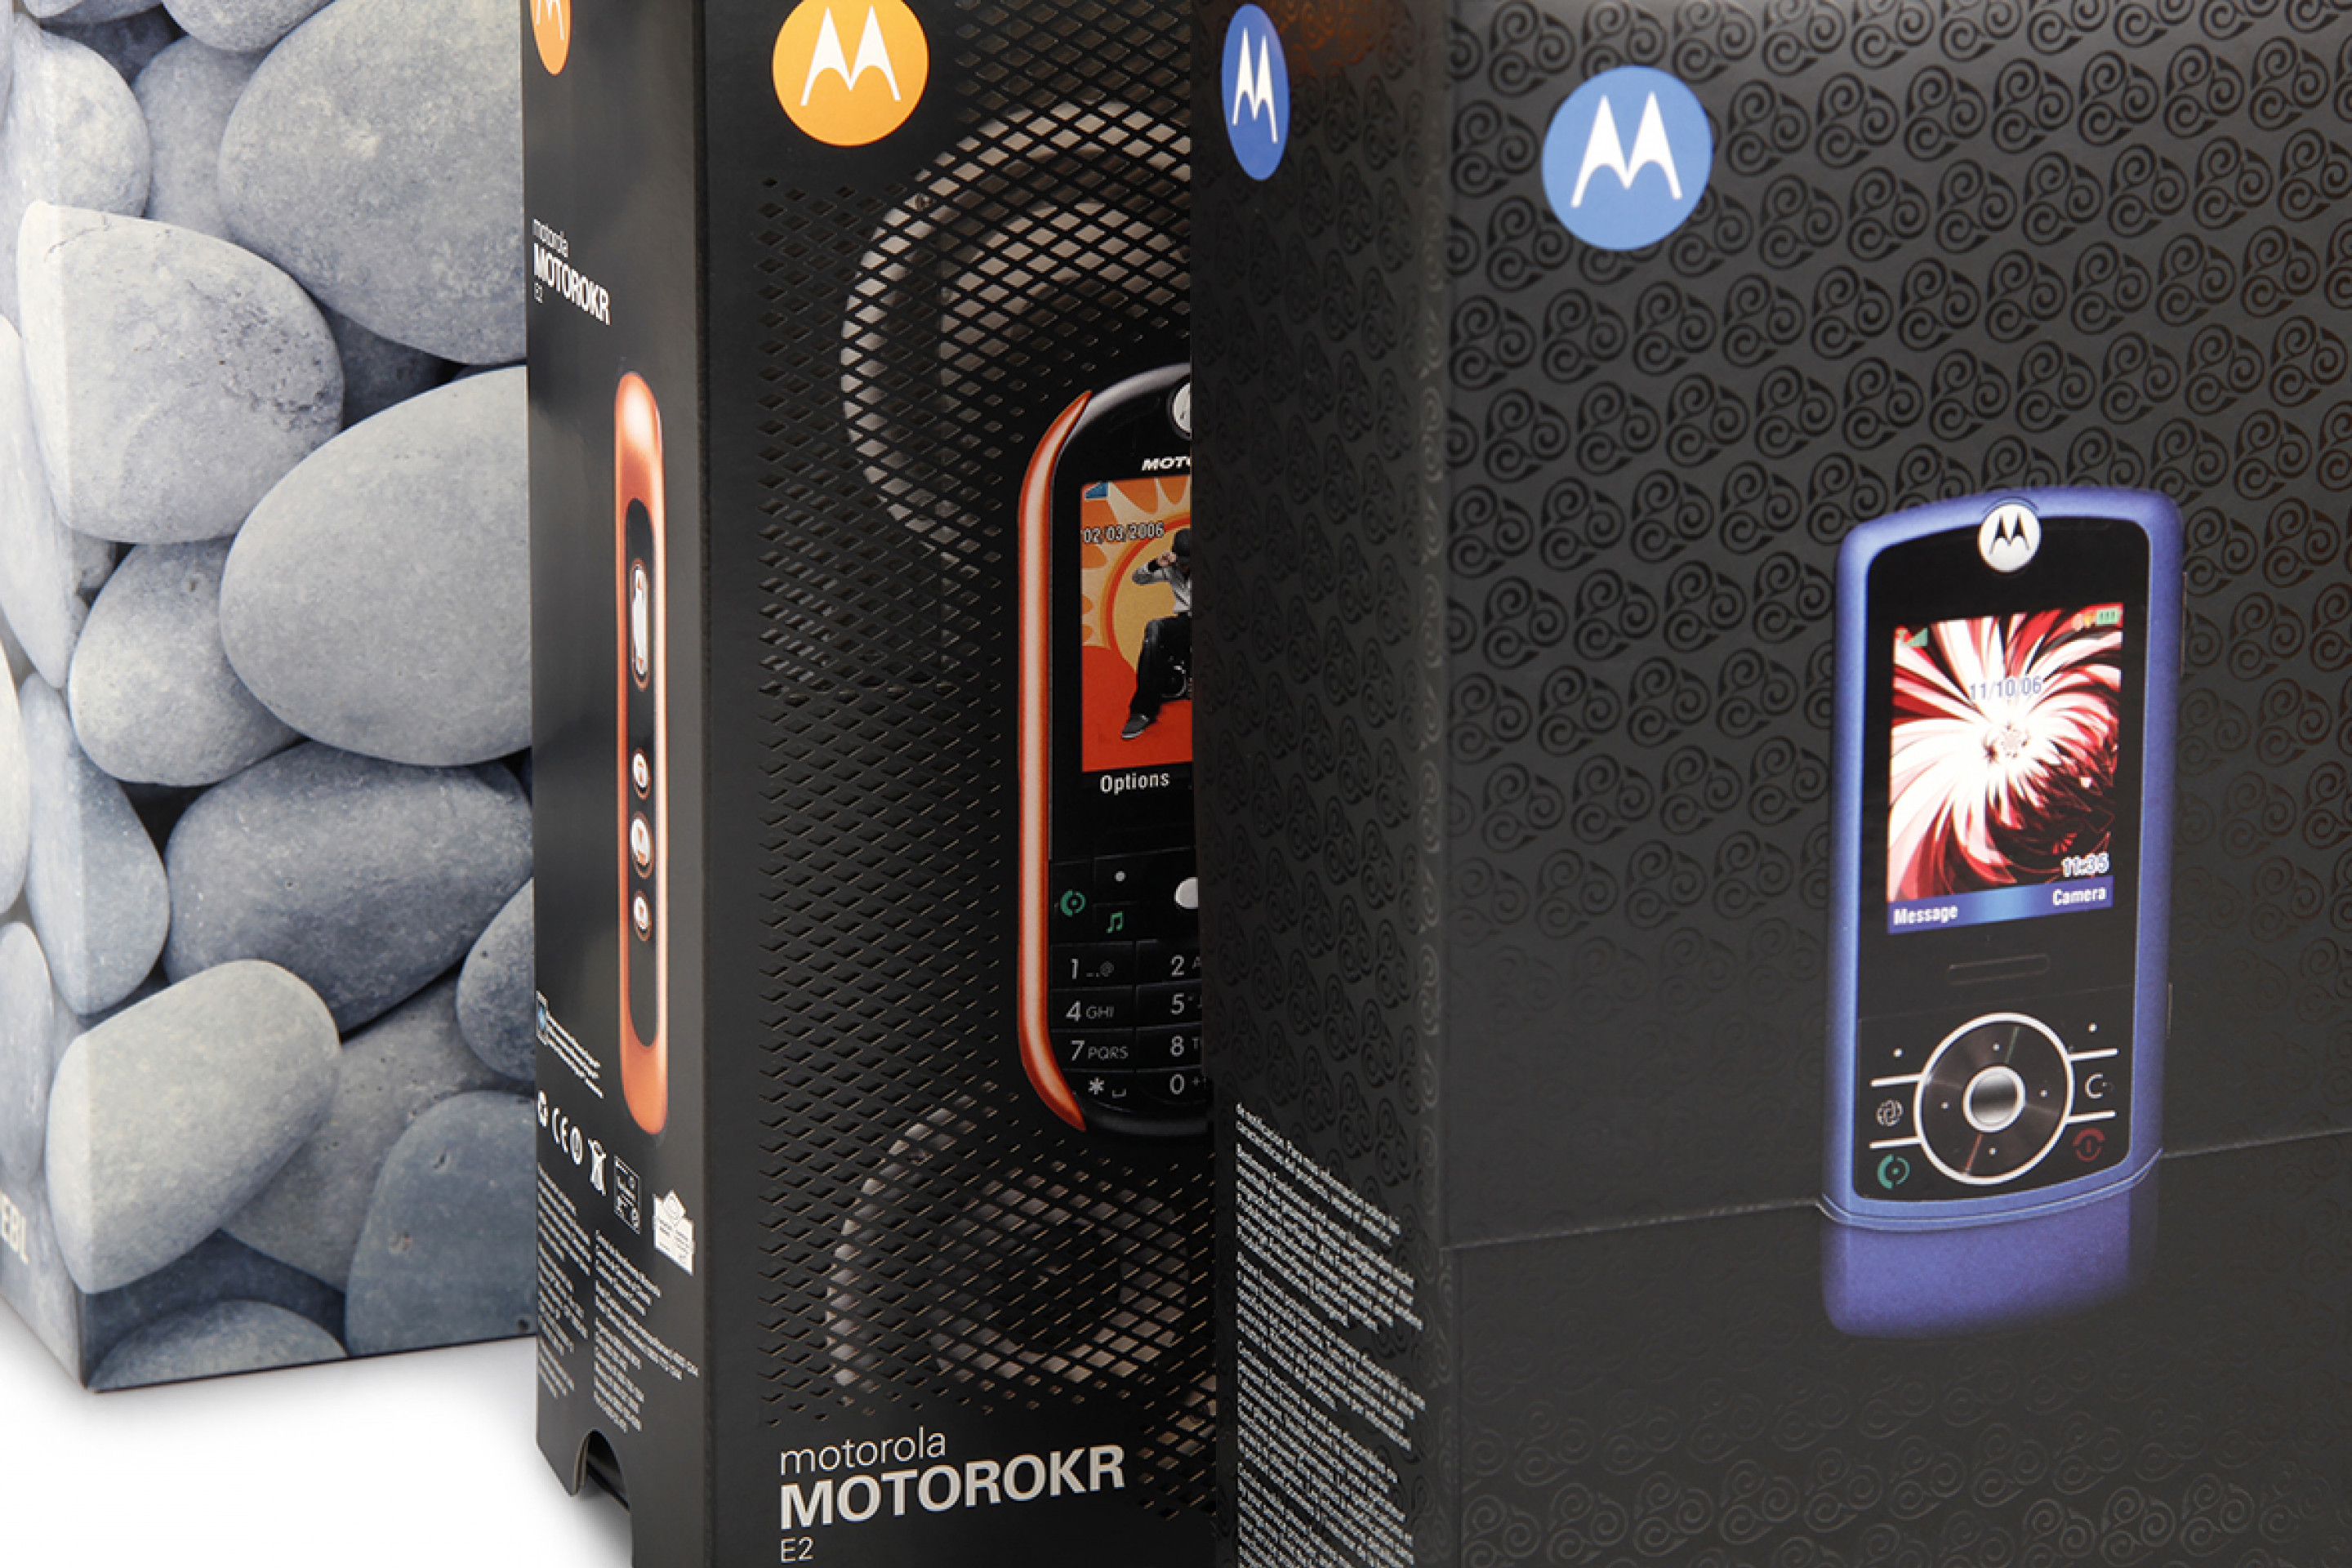 Motorola - Phone Packaging